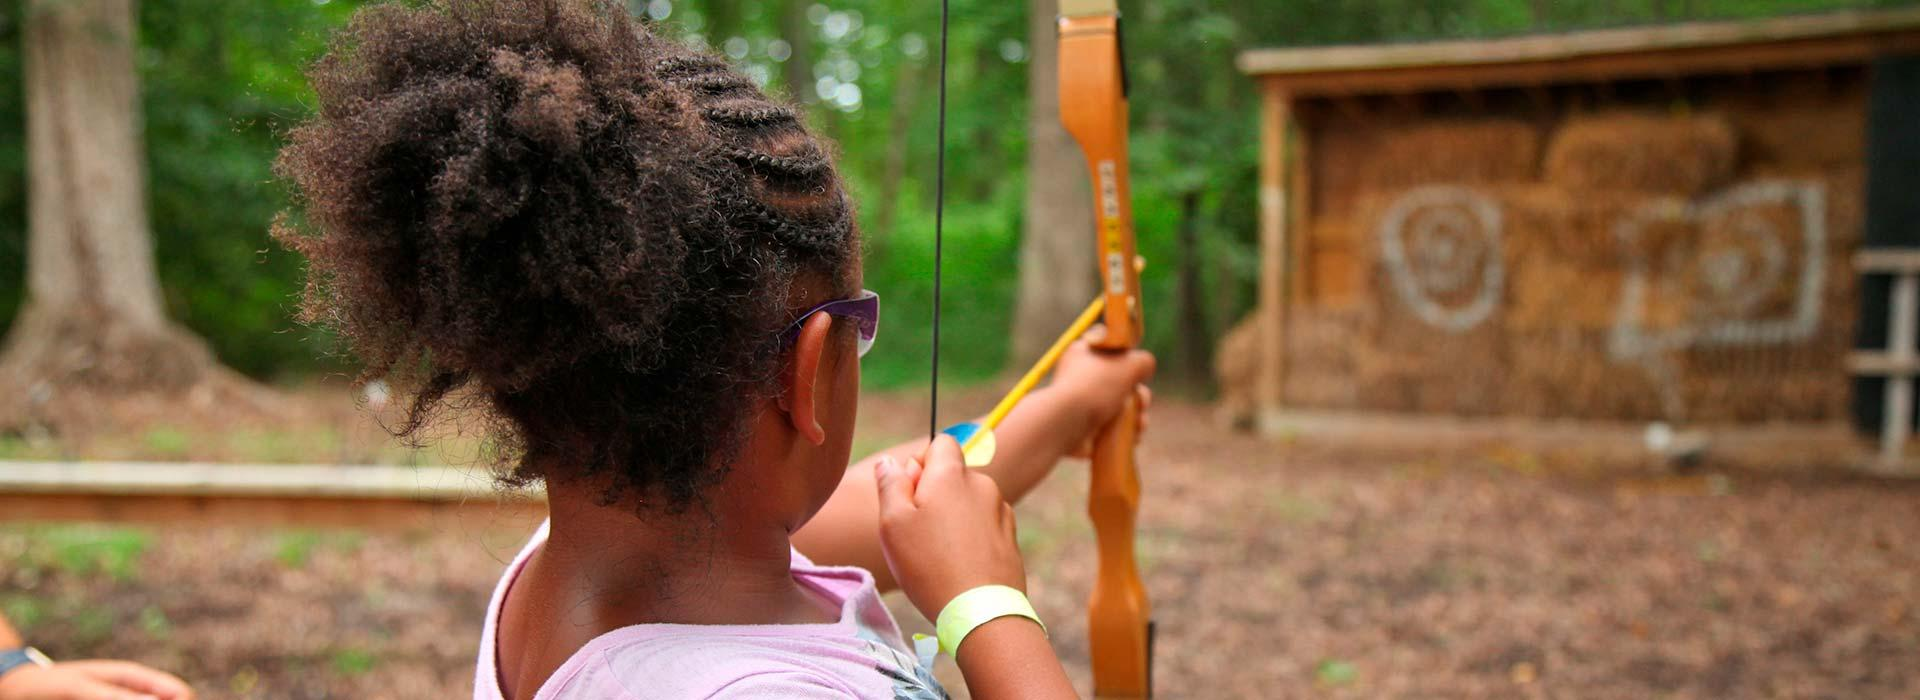 Young girl aiming with bow and arrow at a hay target at YMCA Camp Arrowhead in Suffolk, Virginia